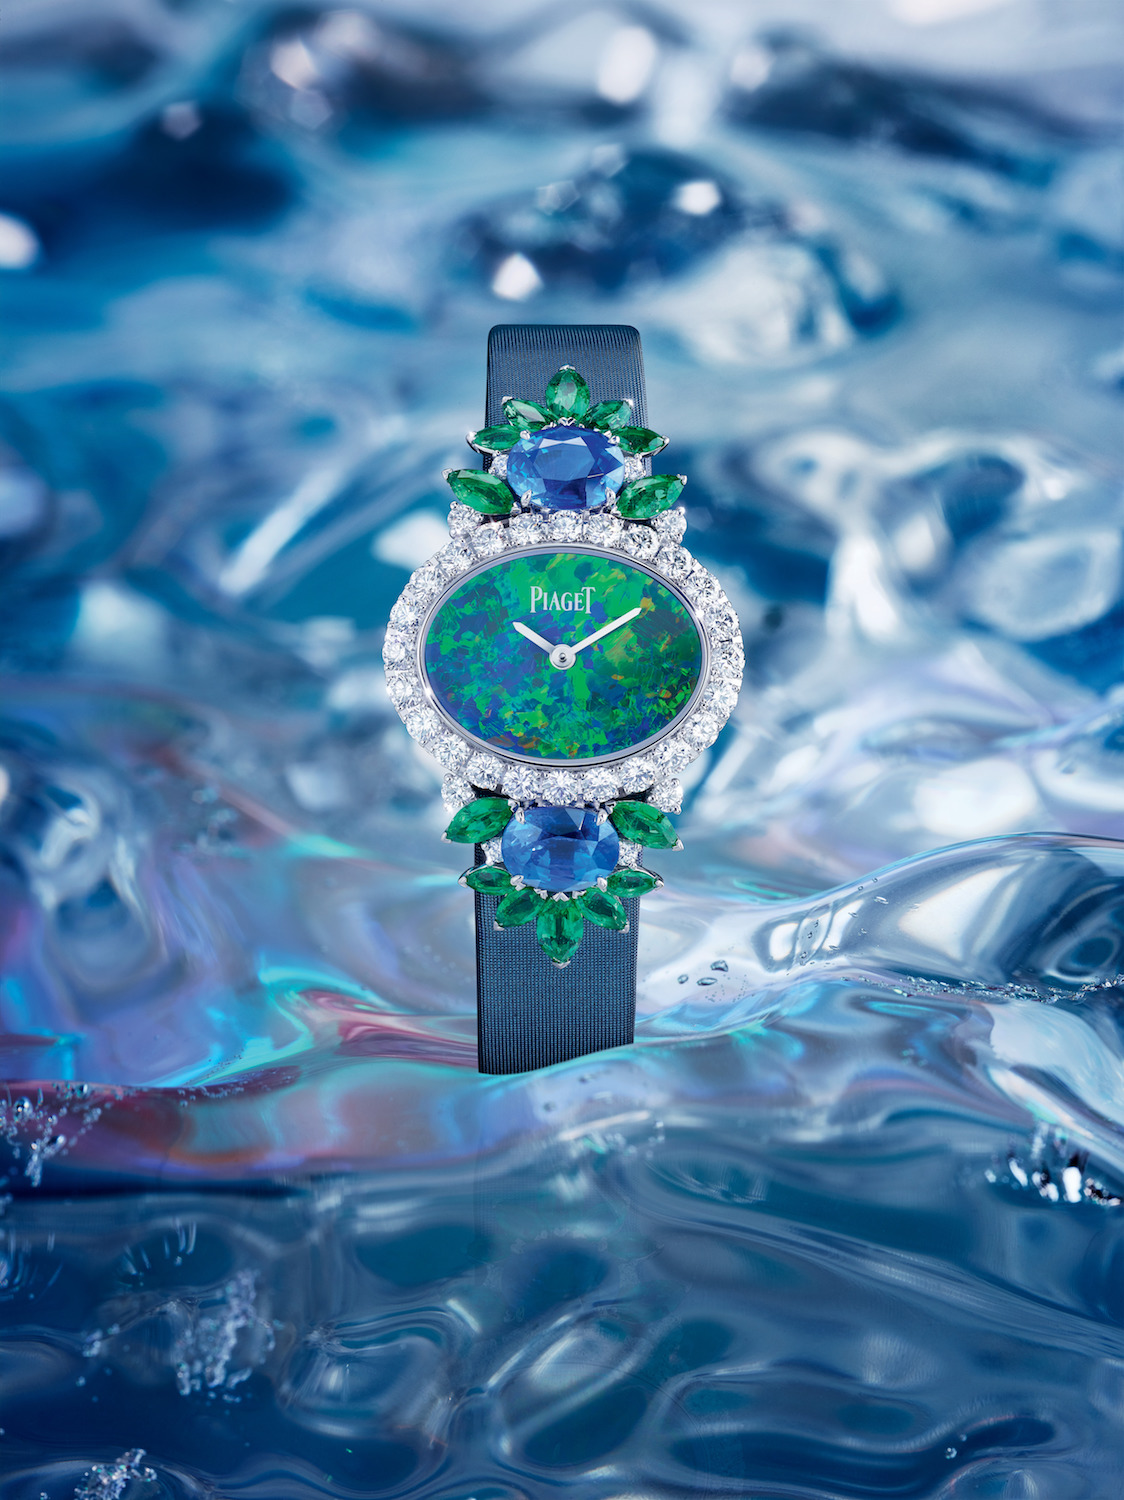 Piaget 'Escape' high jewelry collection